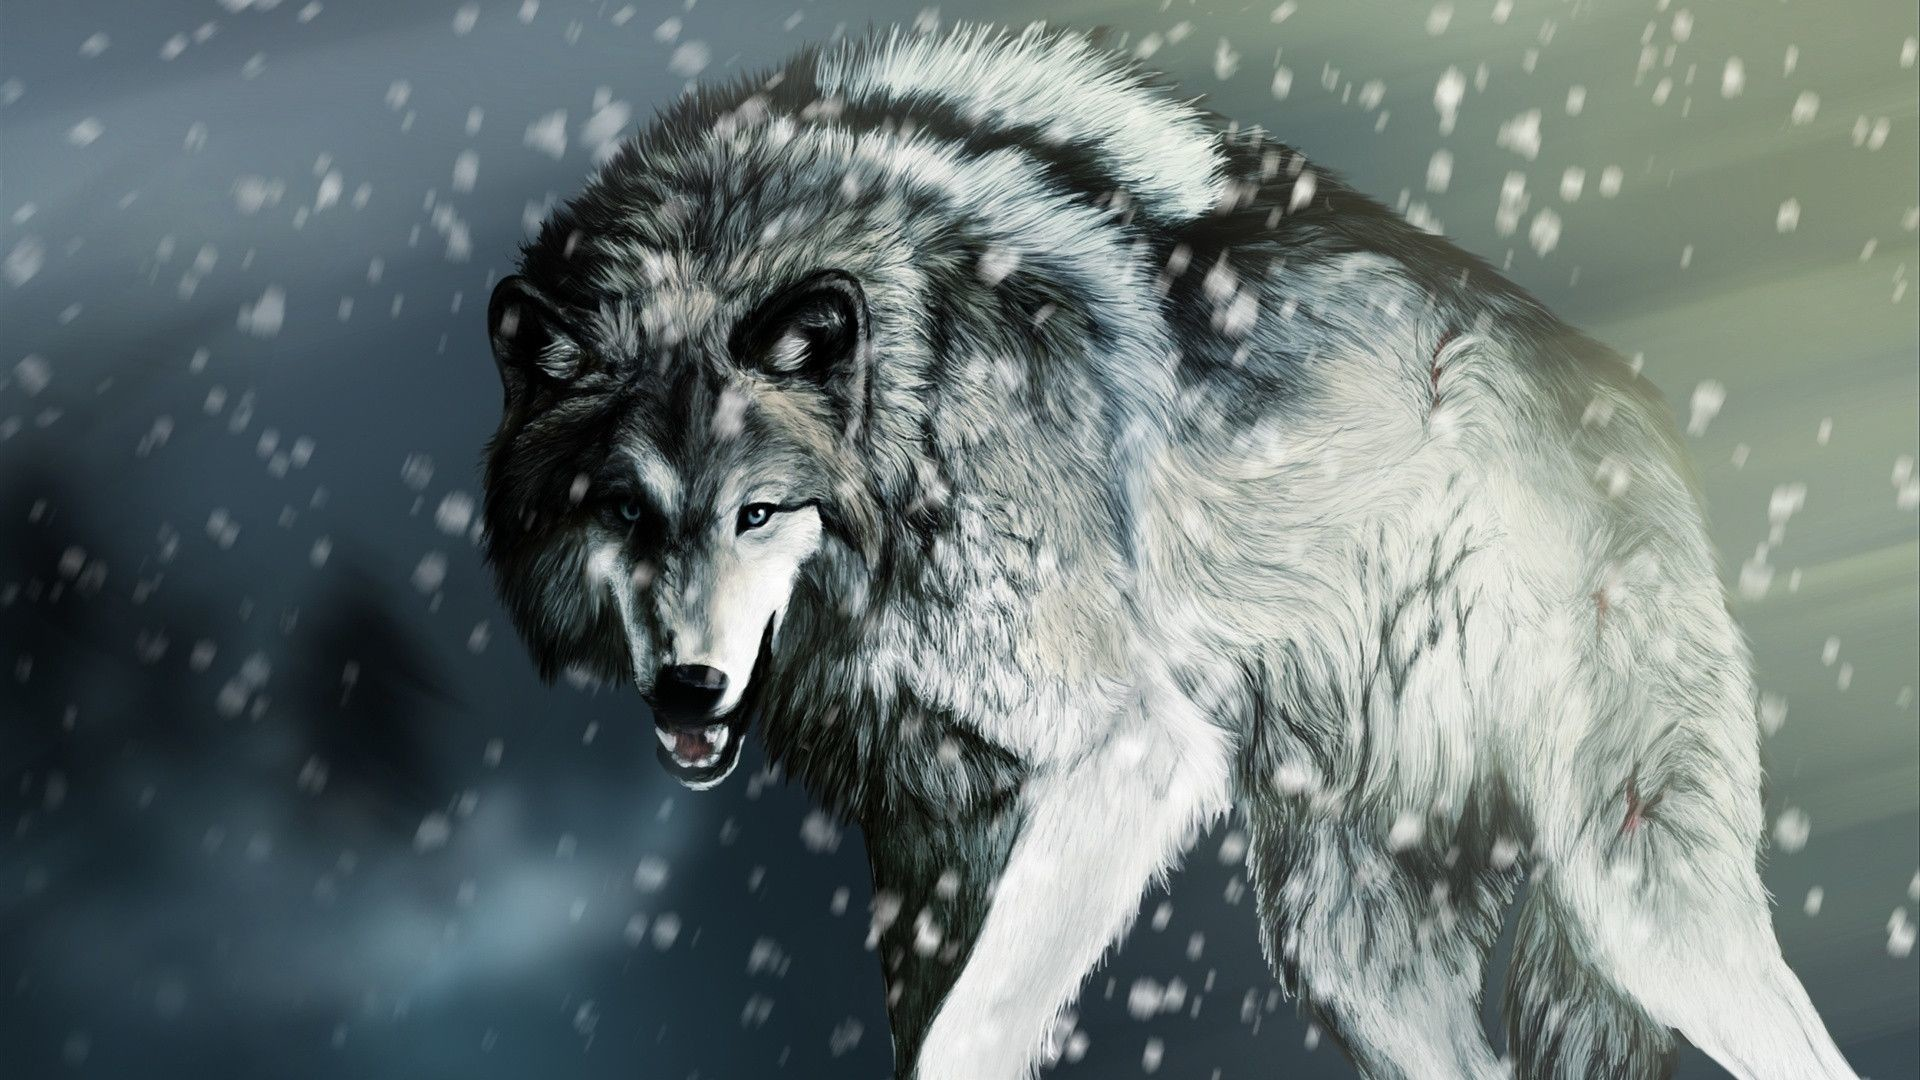 1920x1080 8. werewolf-wallpapers7-600x338